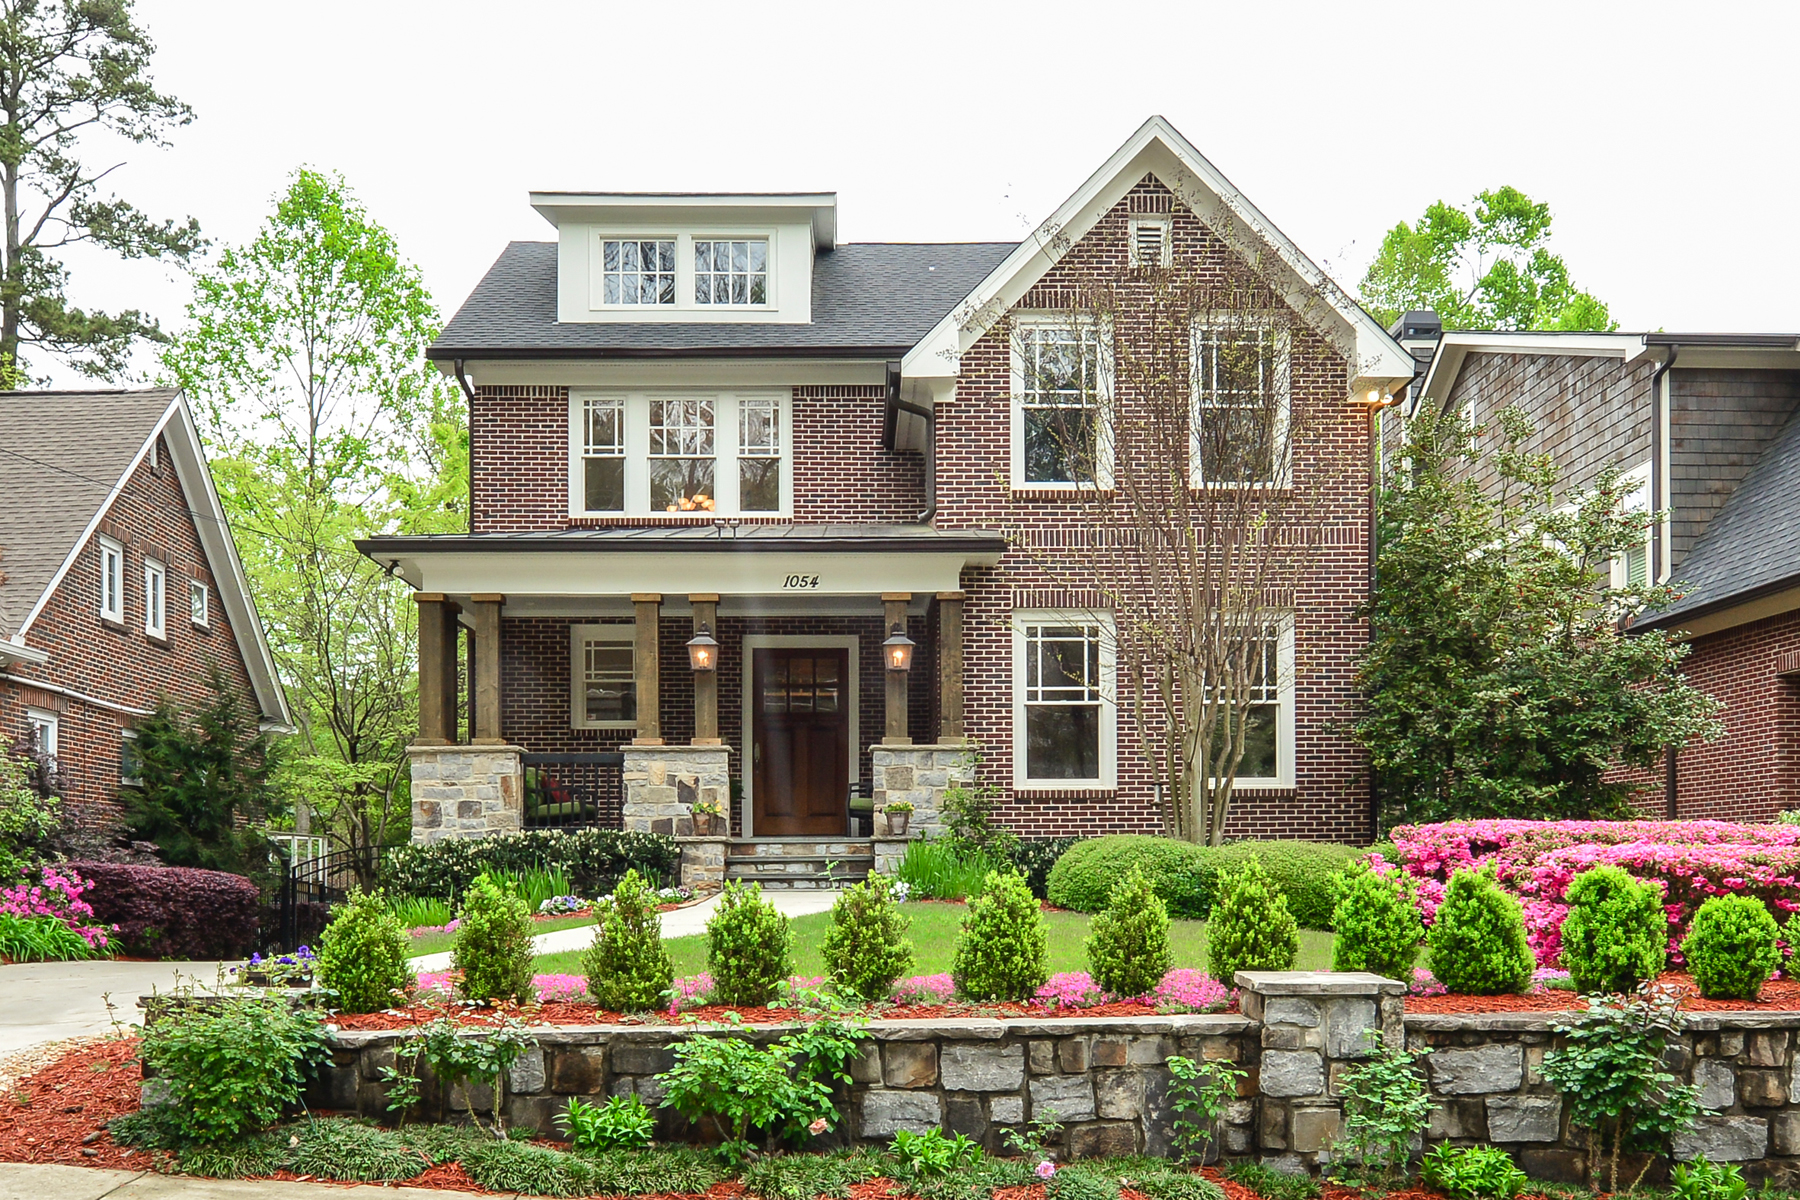 단독 가정 주택 용 매매 에 Stunning Brick And Stone Home In Morningside 1054 Cumberland Road Morningside, Atlanta, 조지아, 30306 미국